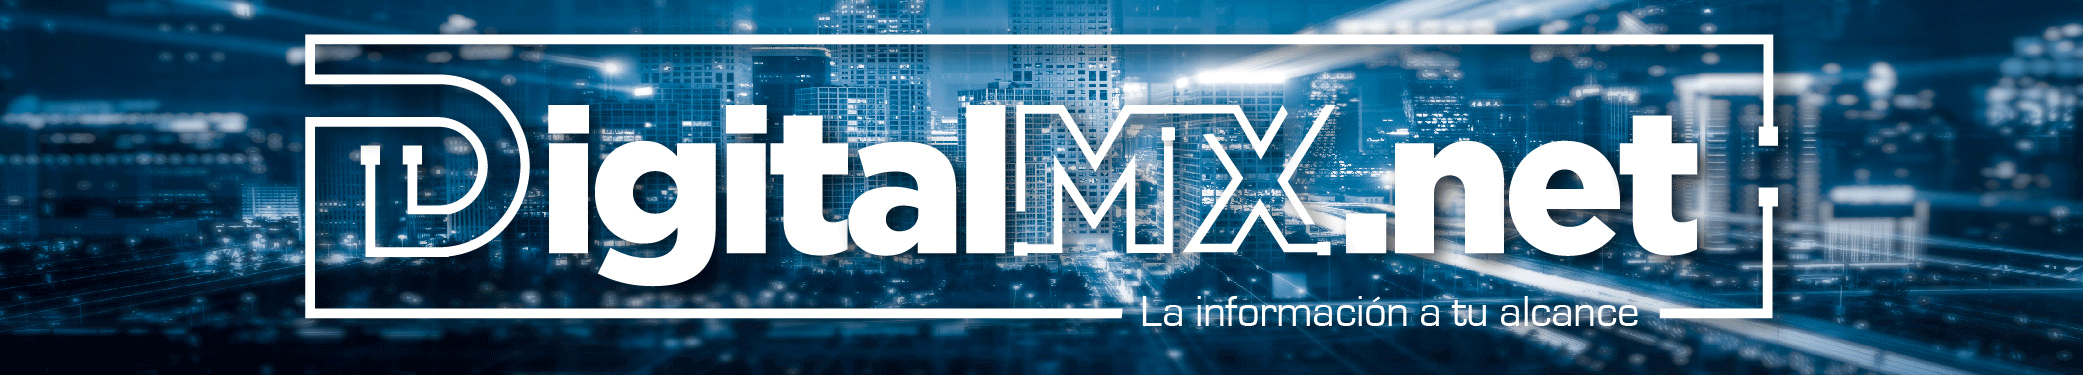 digitalmx.net